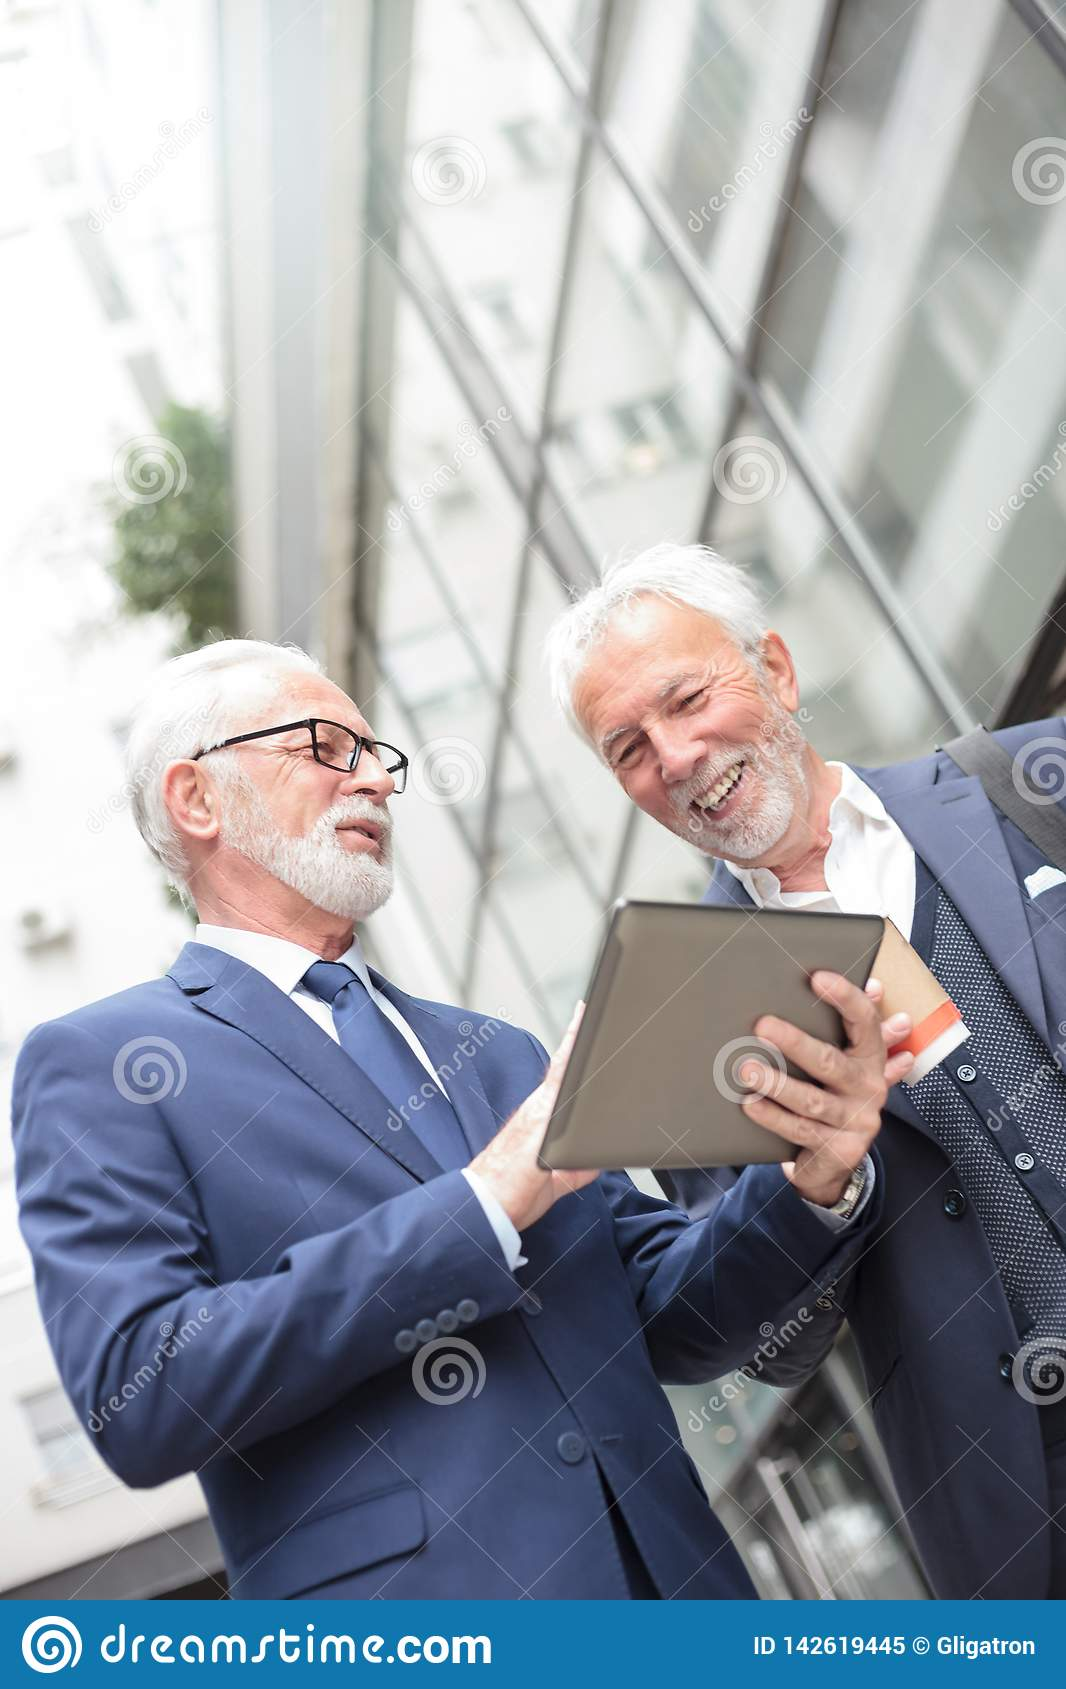 Two smiling senior businessmen working on a tablet standing in front of an office building